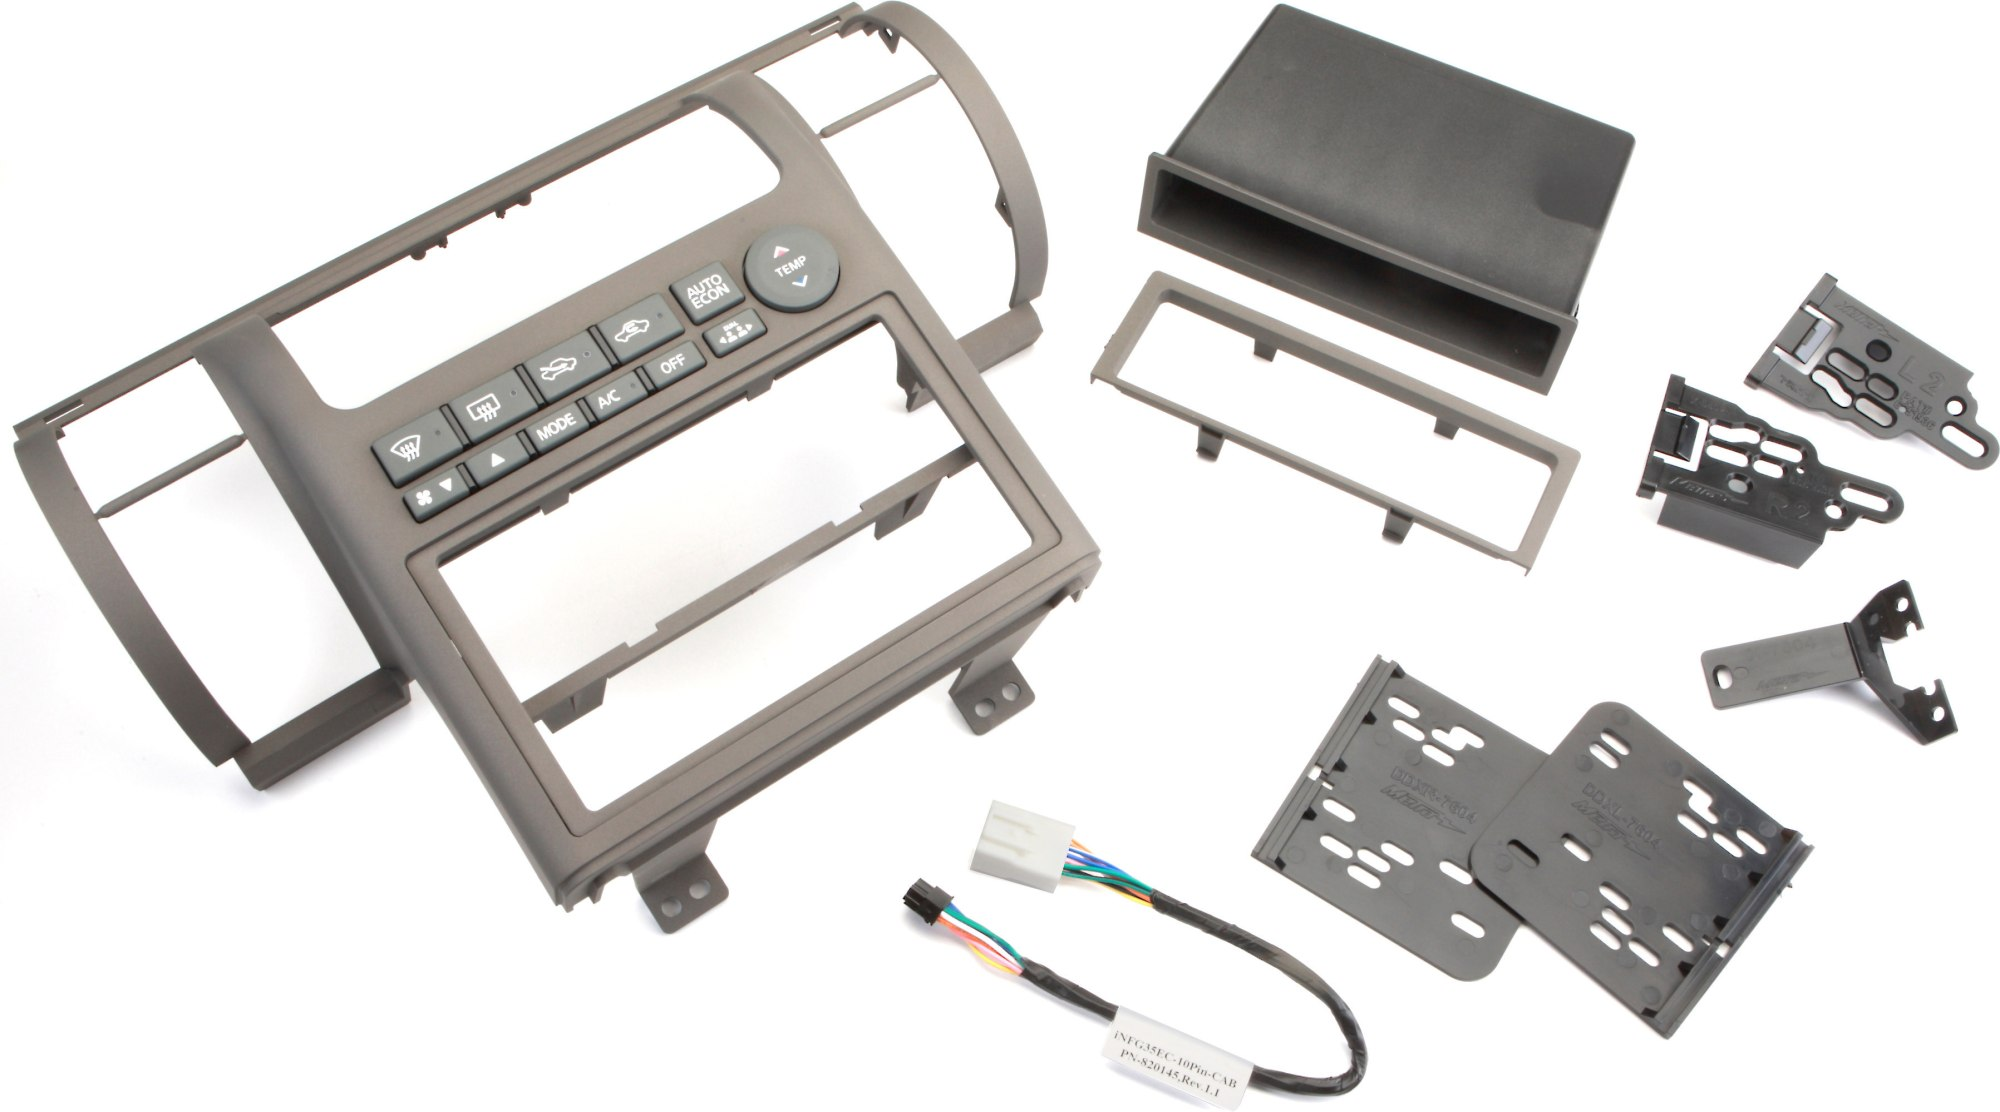 hight resolution of metra 99 7604 dash kit tan install a new single din or double din car stereo in your 2003 04 infiniti g35 at crutchfield